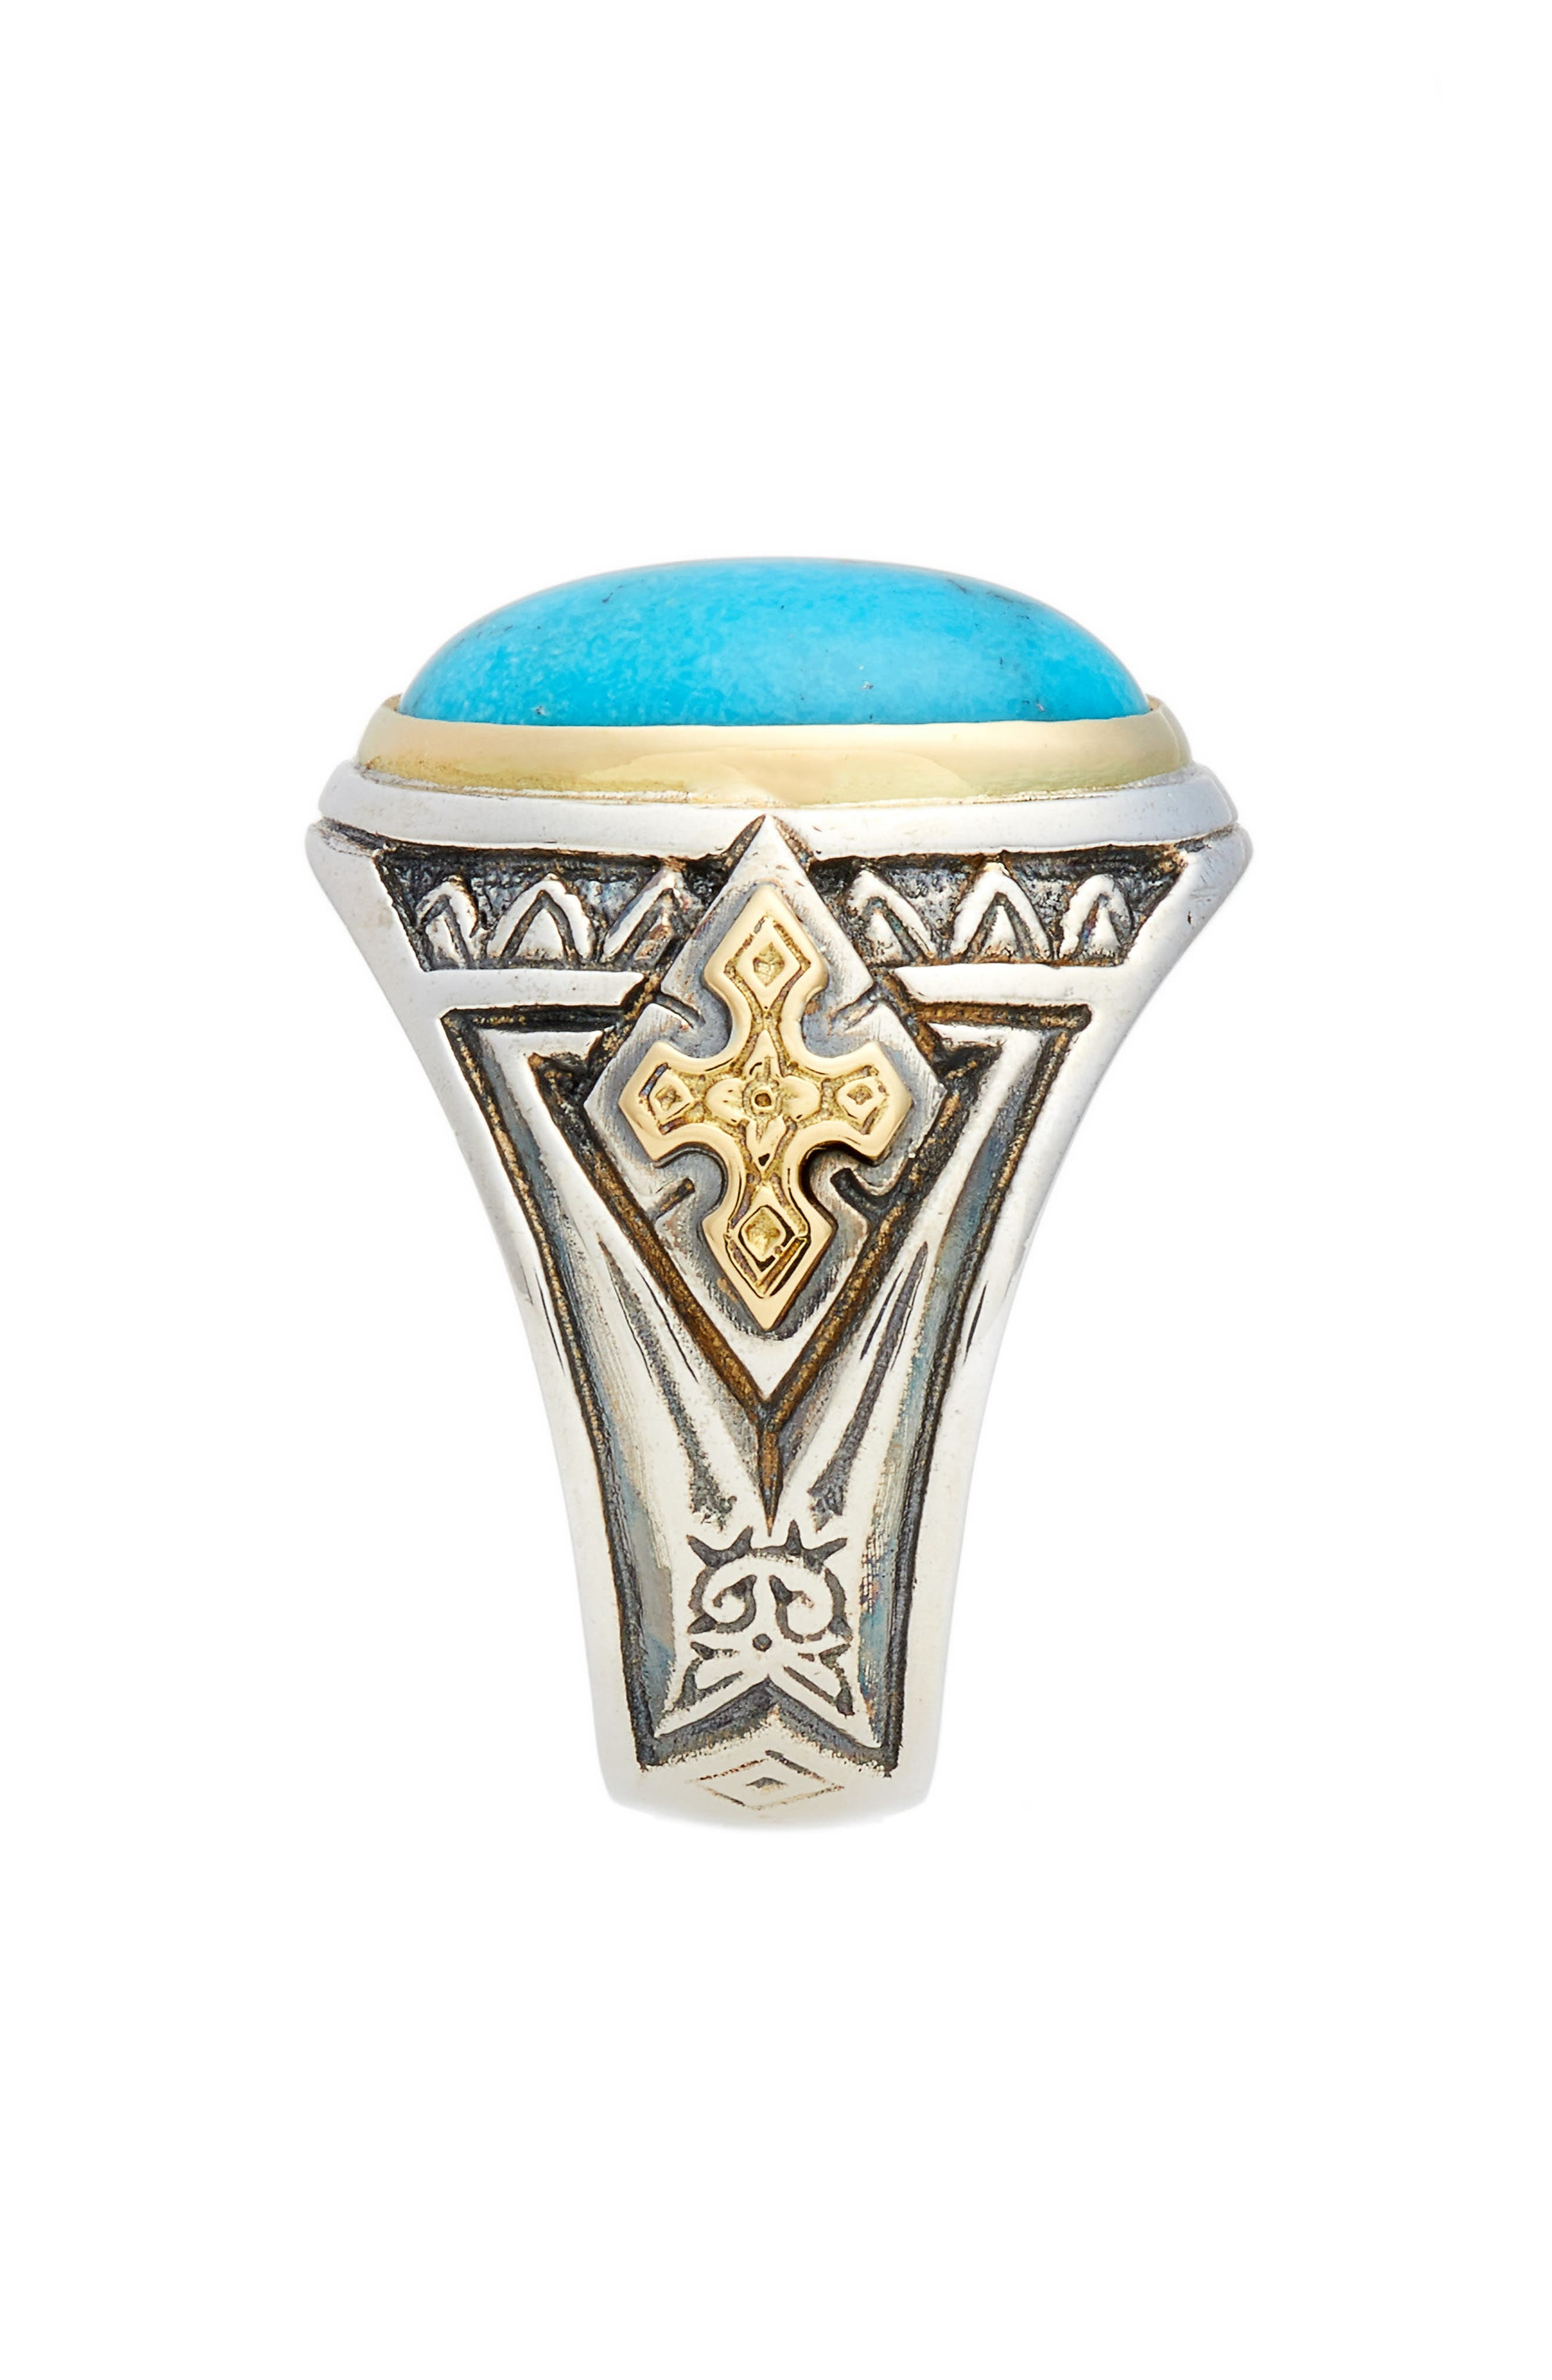 Heonos Turquoise Ring,                             Alternate thumbnail 2, color,                             Silver/ Gold/ Turquoise